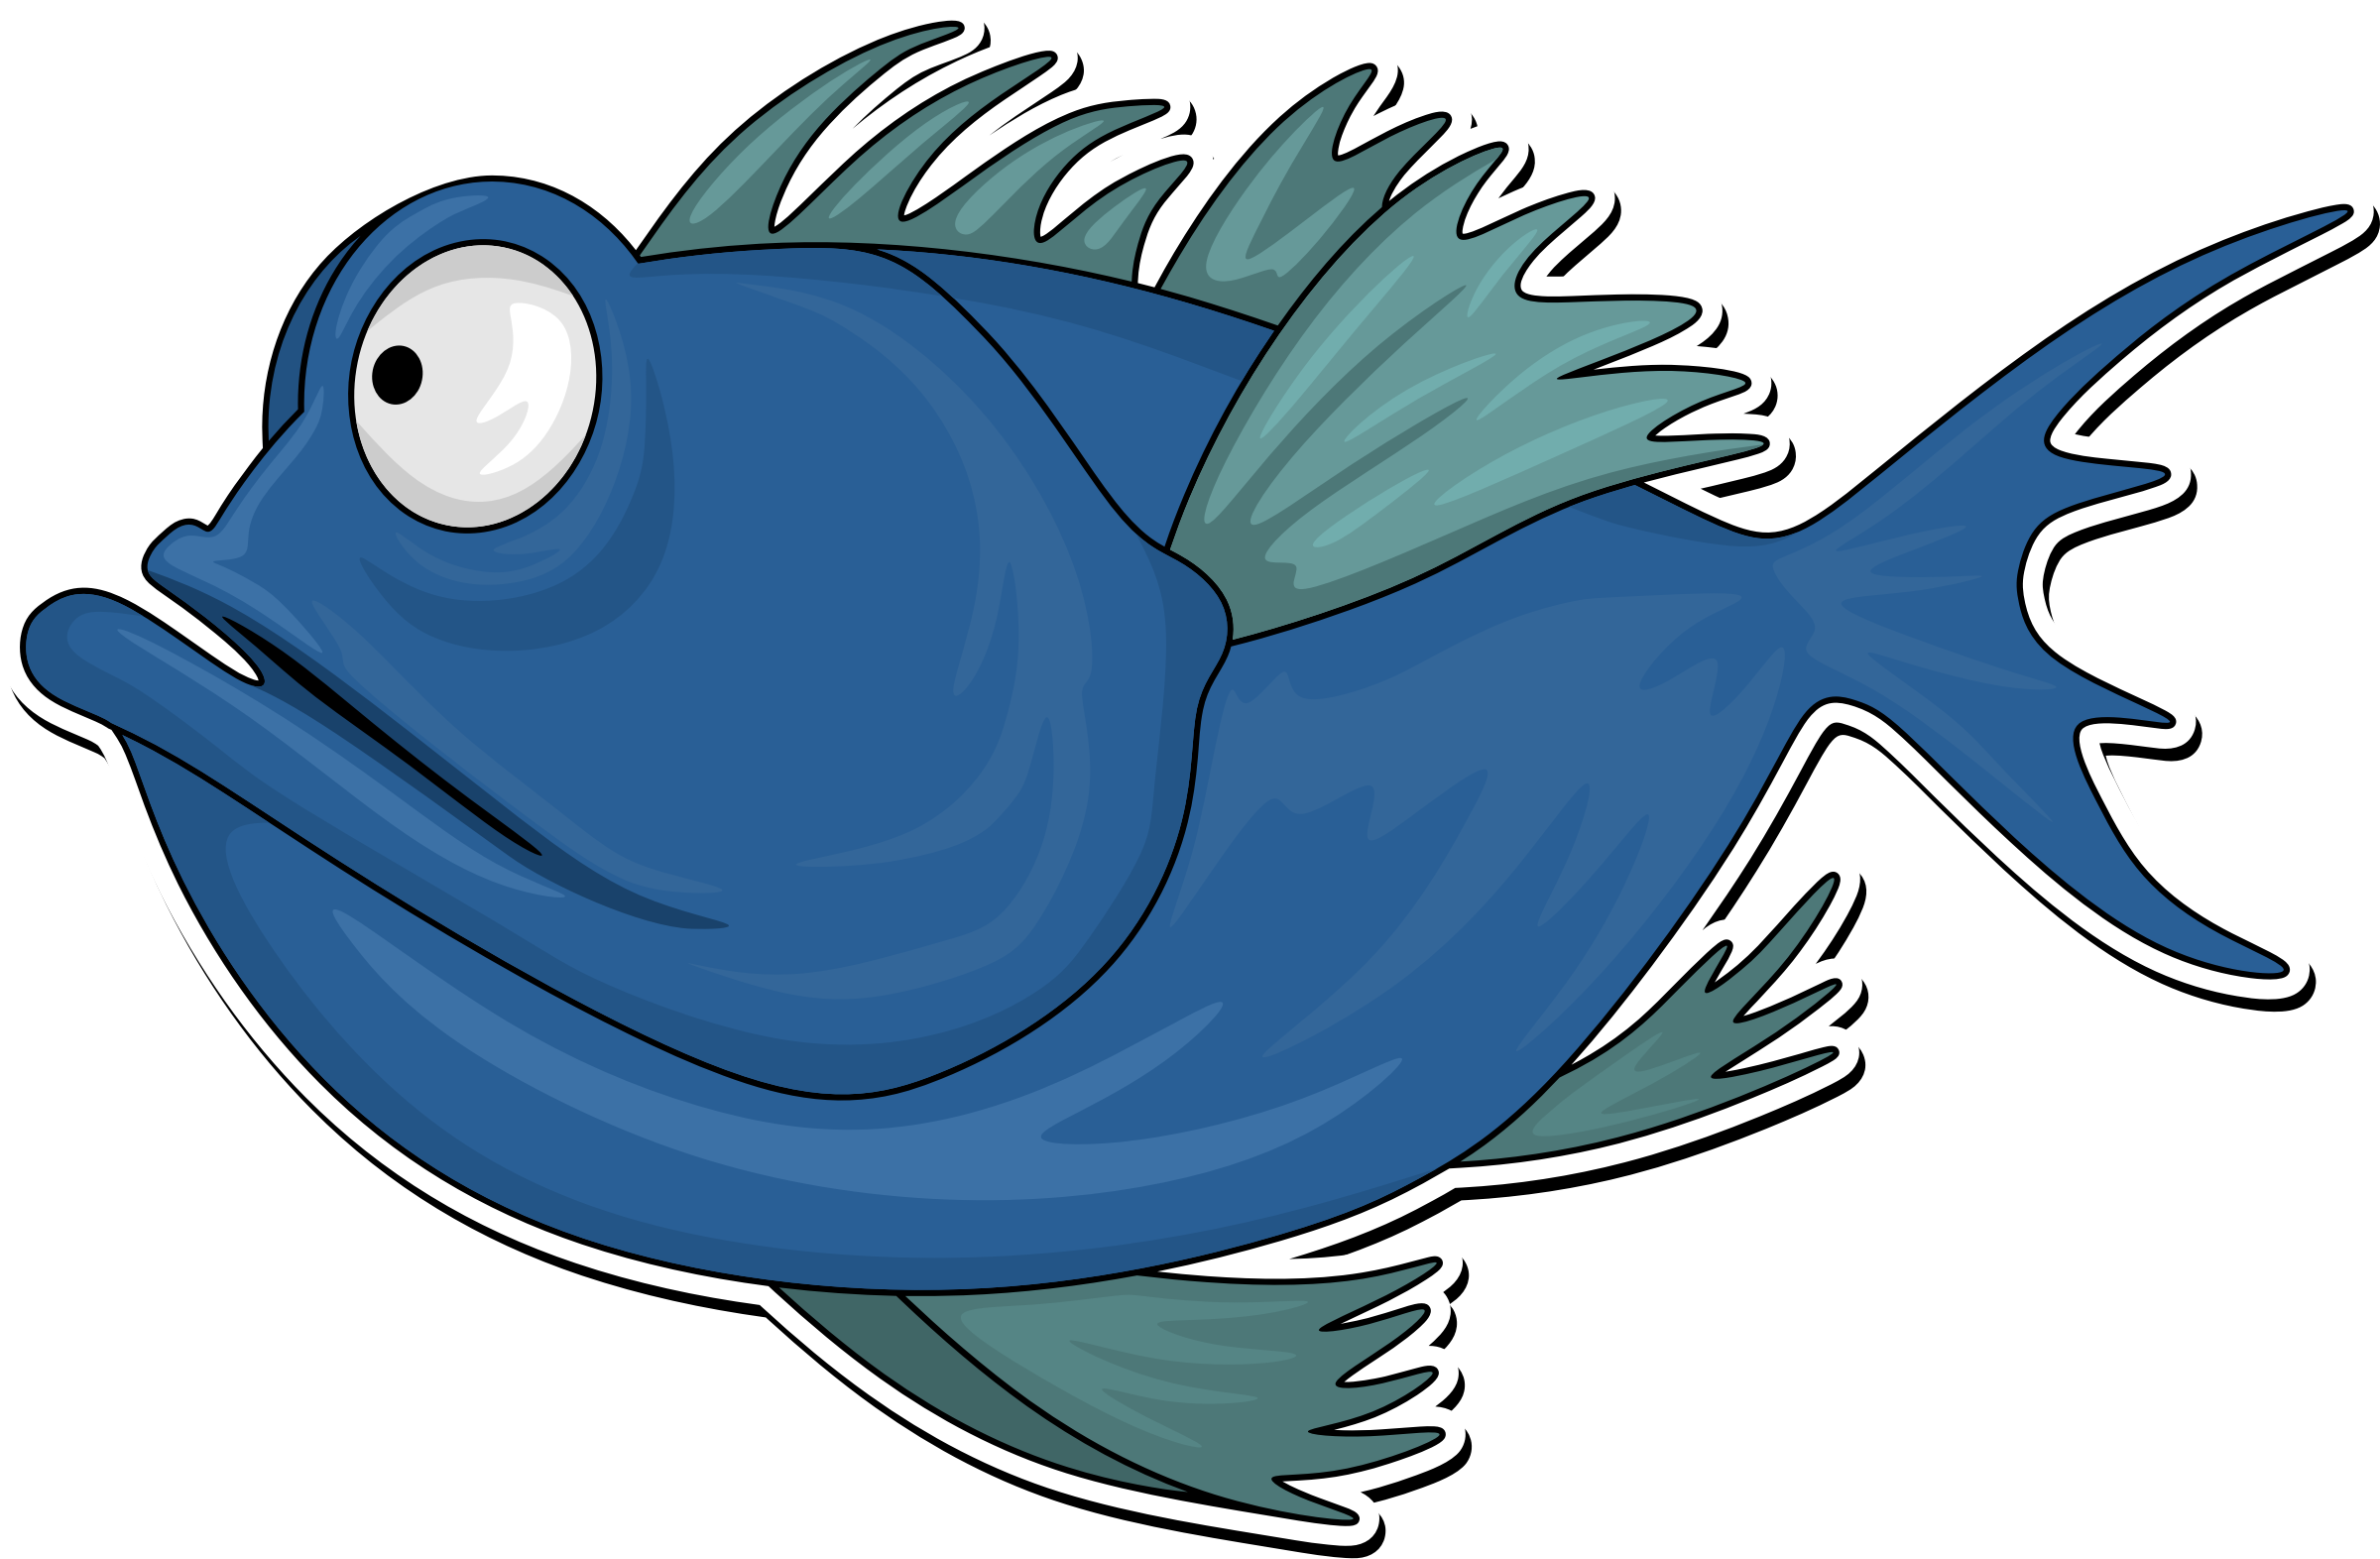 Fish lake clipart vector royalty free download Clipart - Cartoon fish 2 vector royalty free download